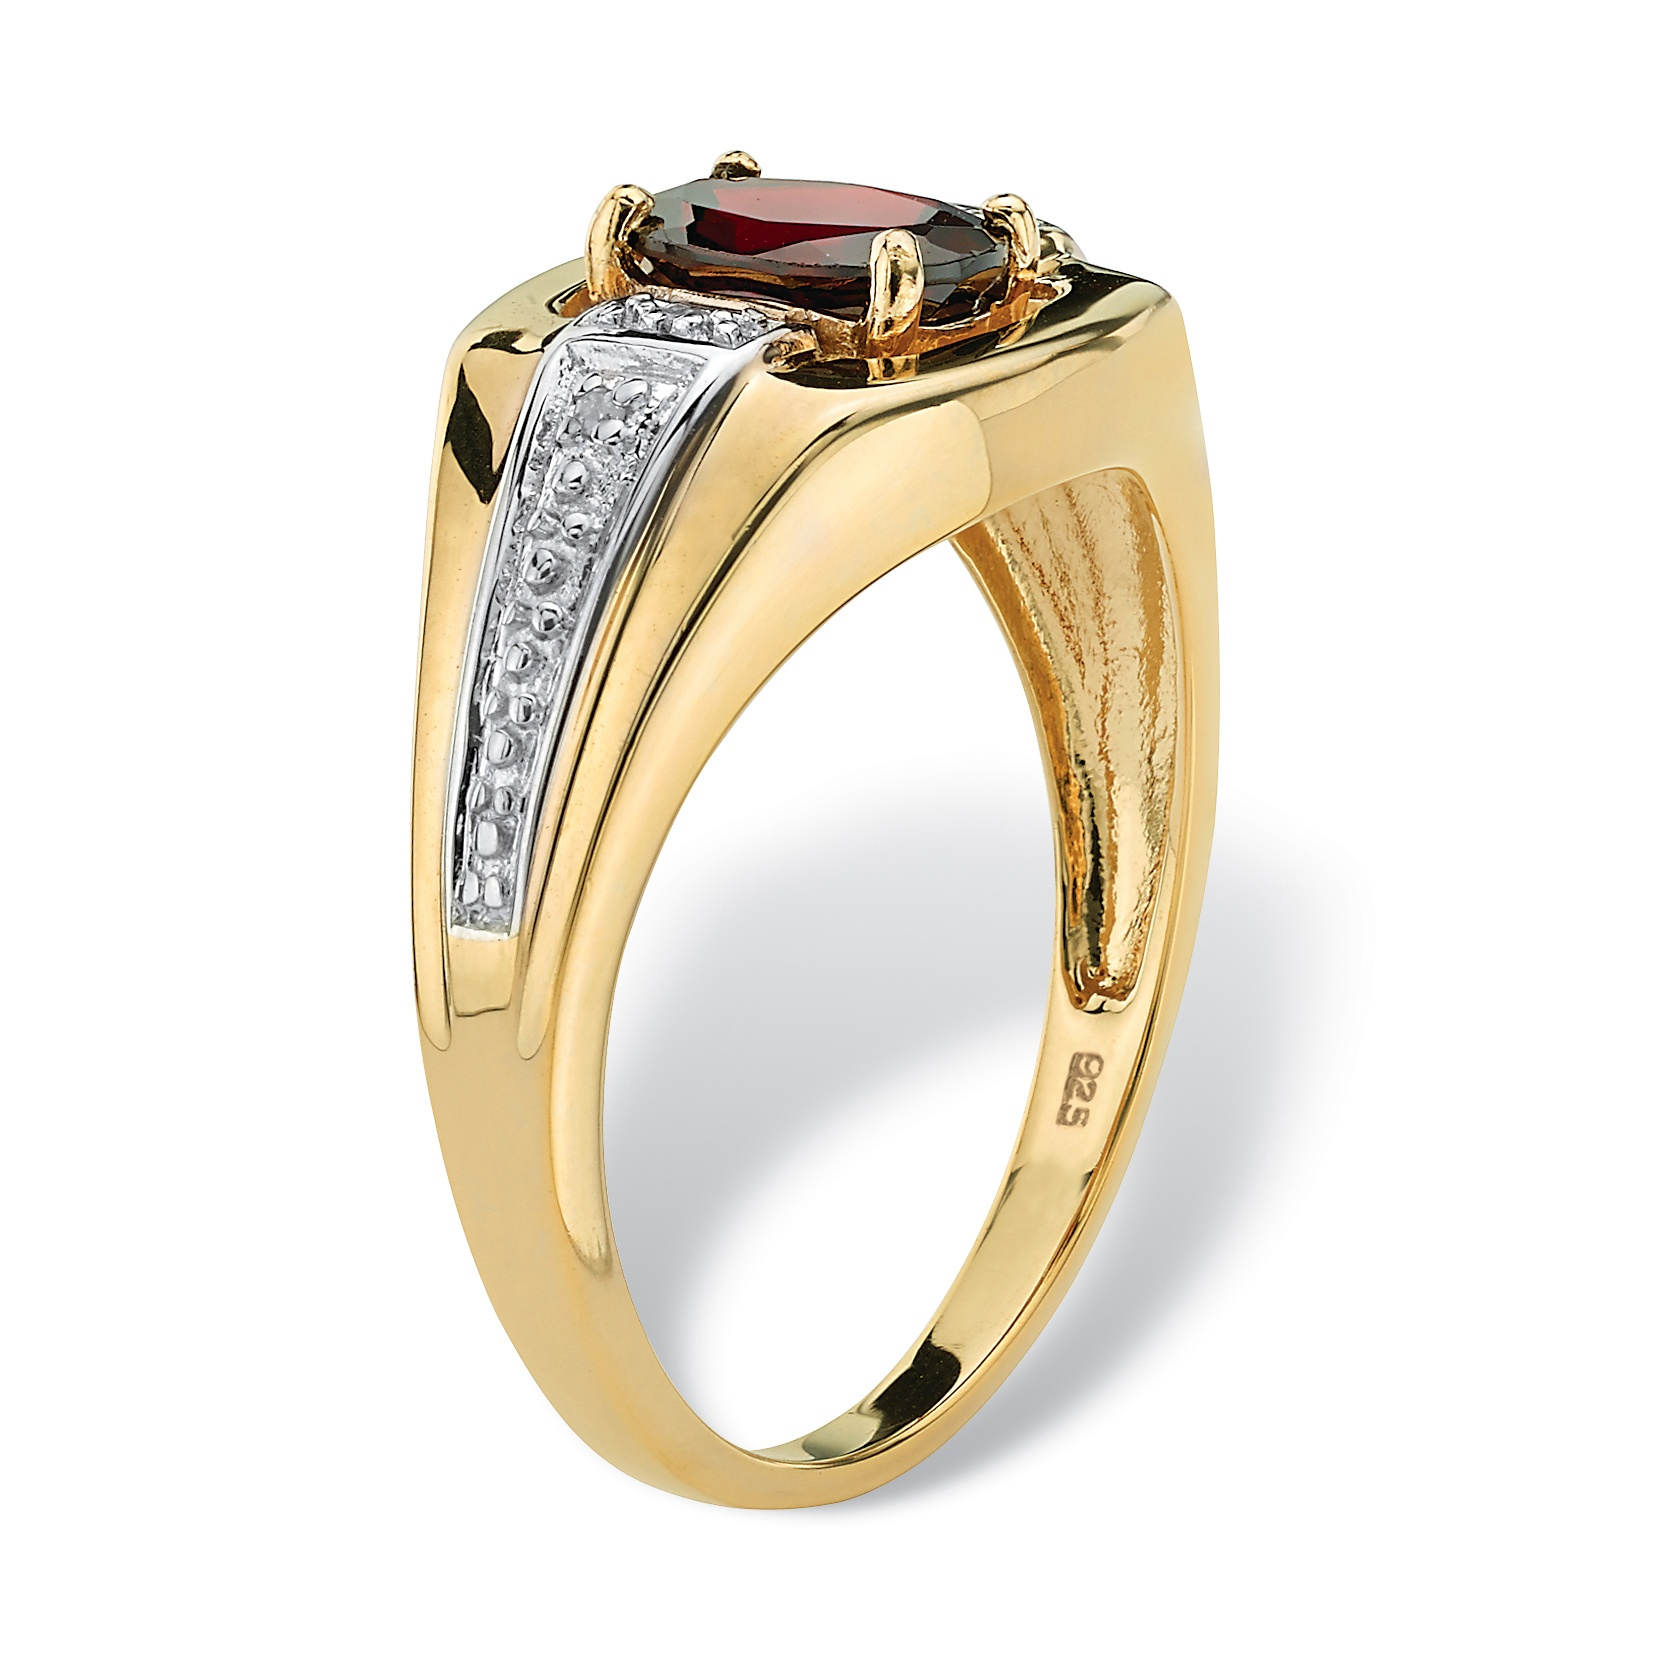 palmbeach jewelry men 39 s 1 40 tcw garnet ring 18k gold over. Black Bedroom Furniture Sets. Home Design Ideas